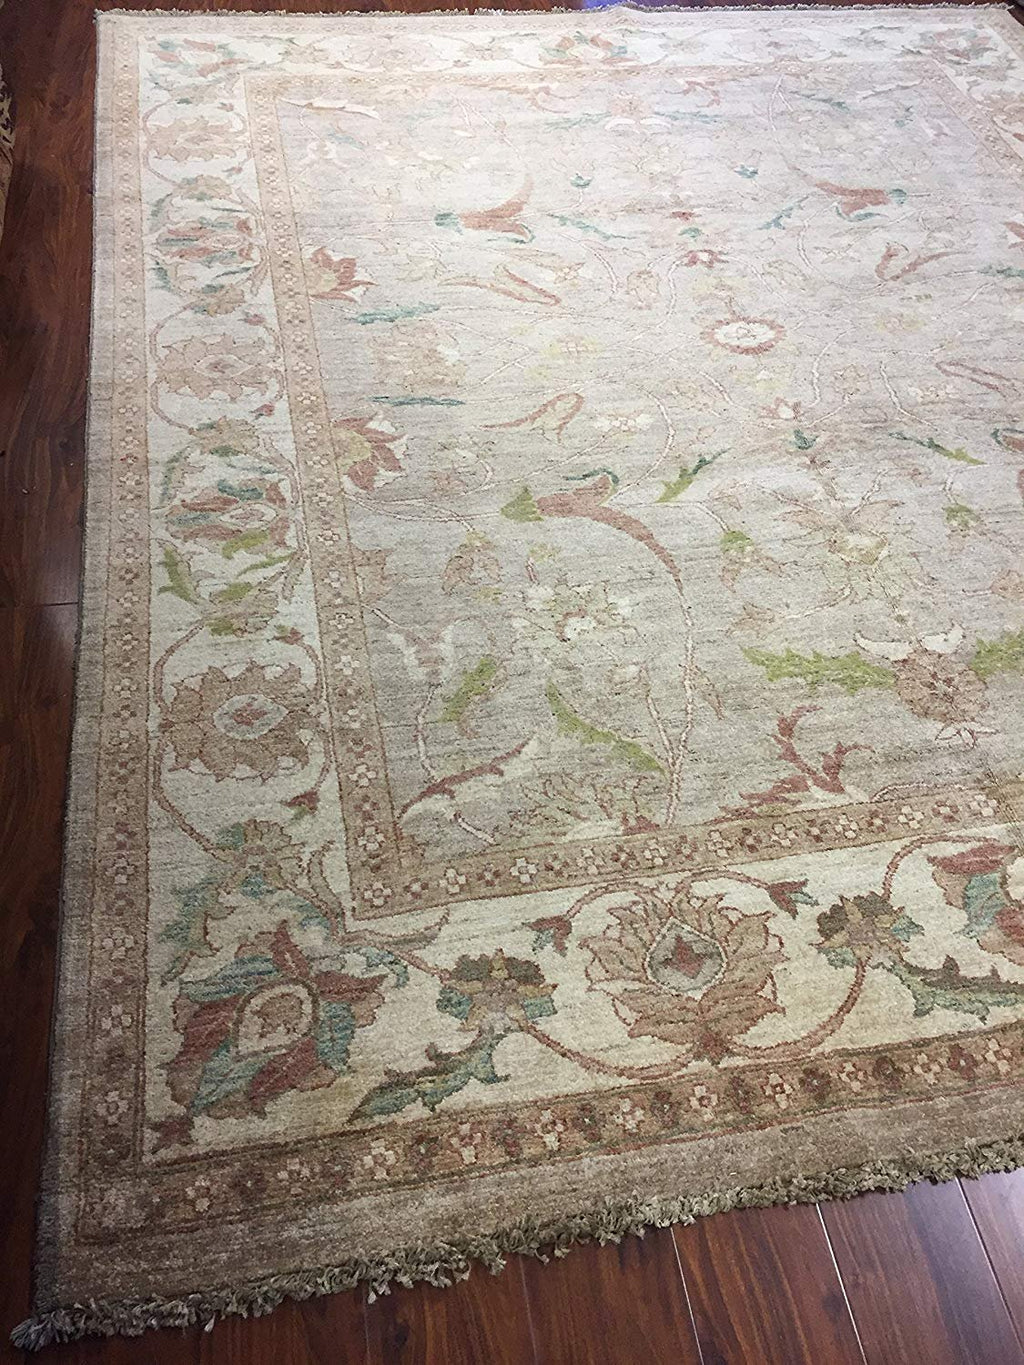 Authentic Handmade fine Pakistan Rug-Real Wool Allover Floral Pattern Faded/Vintage-Olive/Beige-(8.1 by 9.10 Feet)